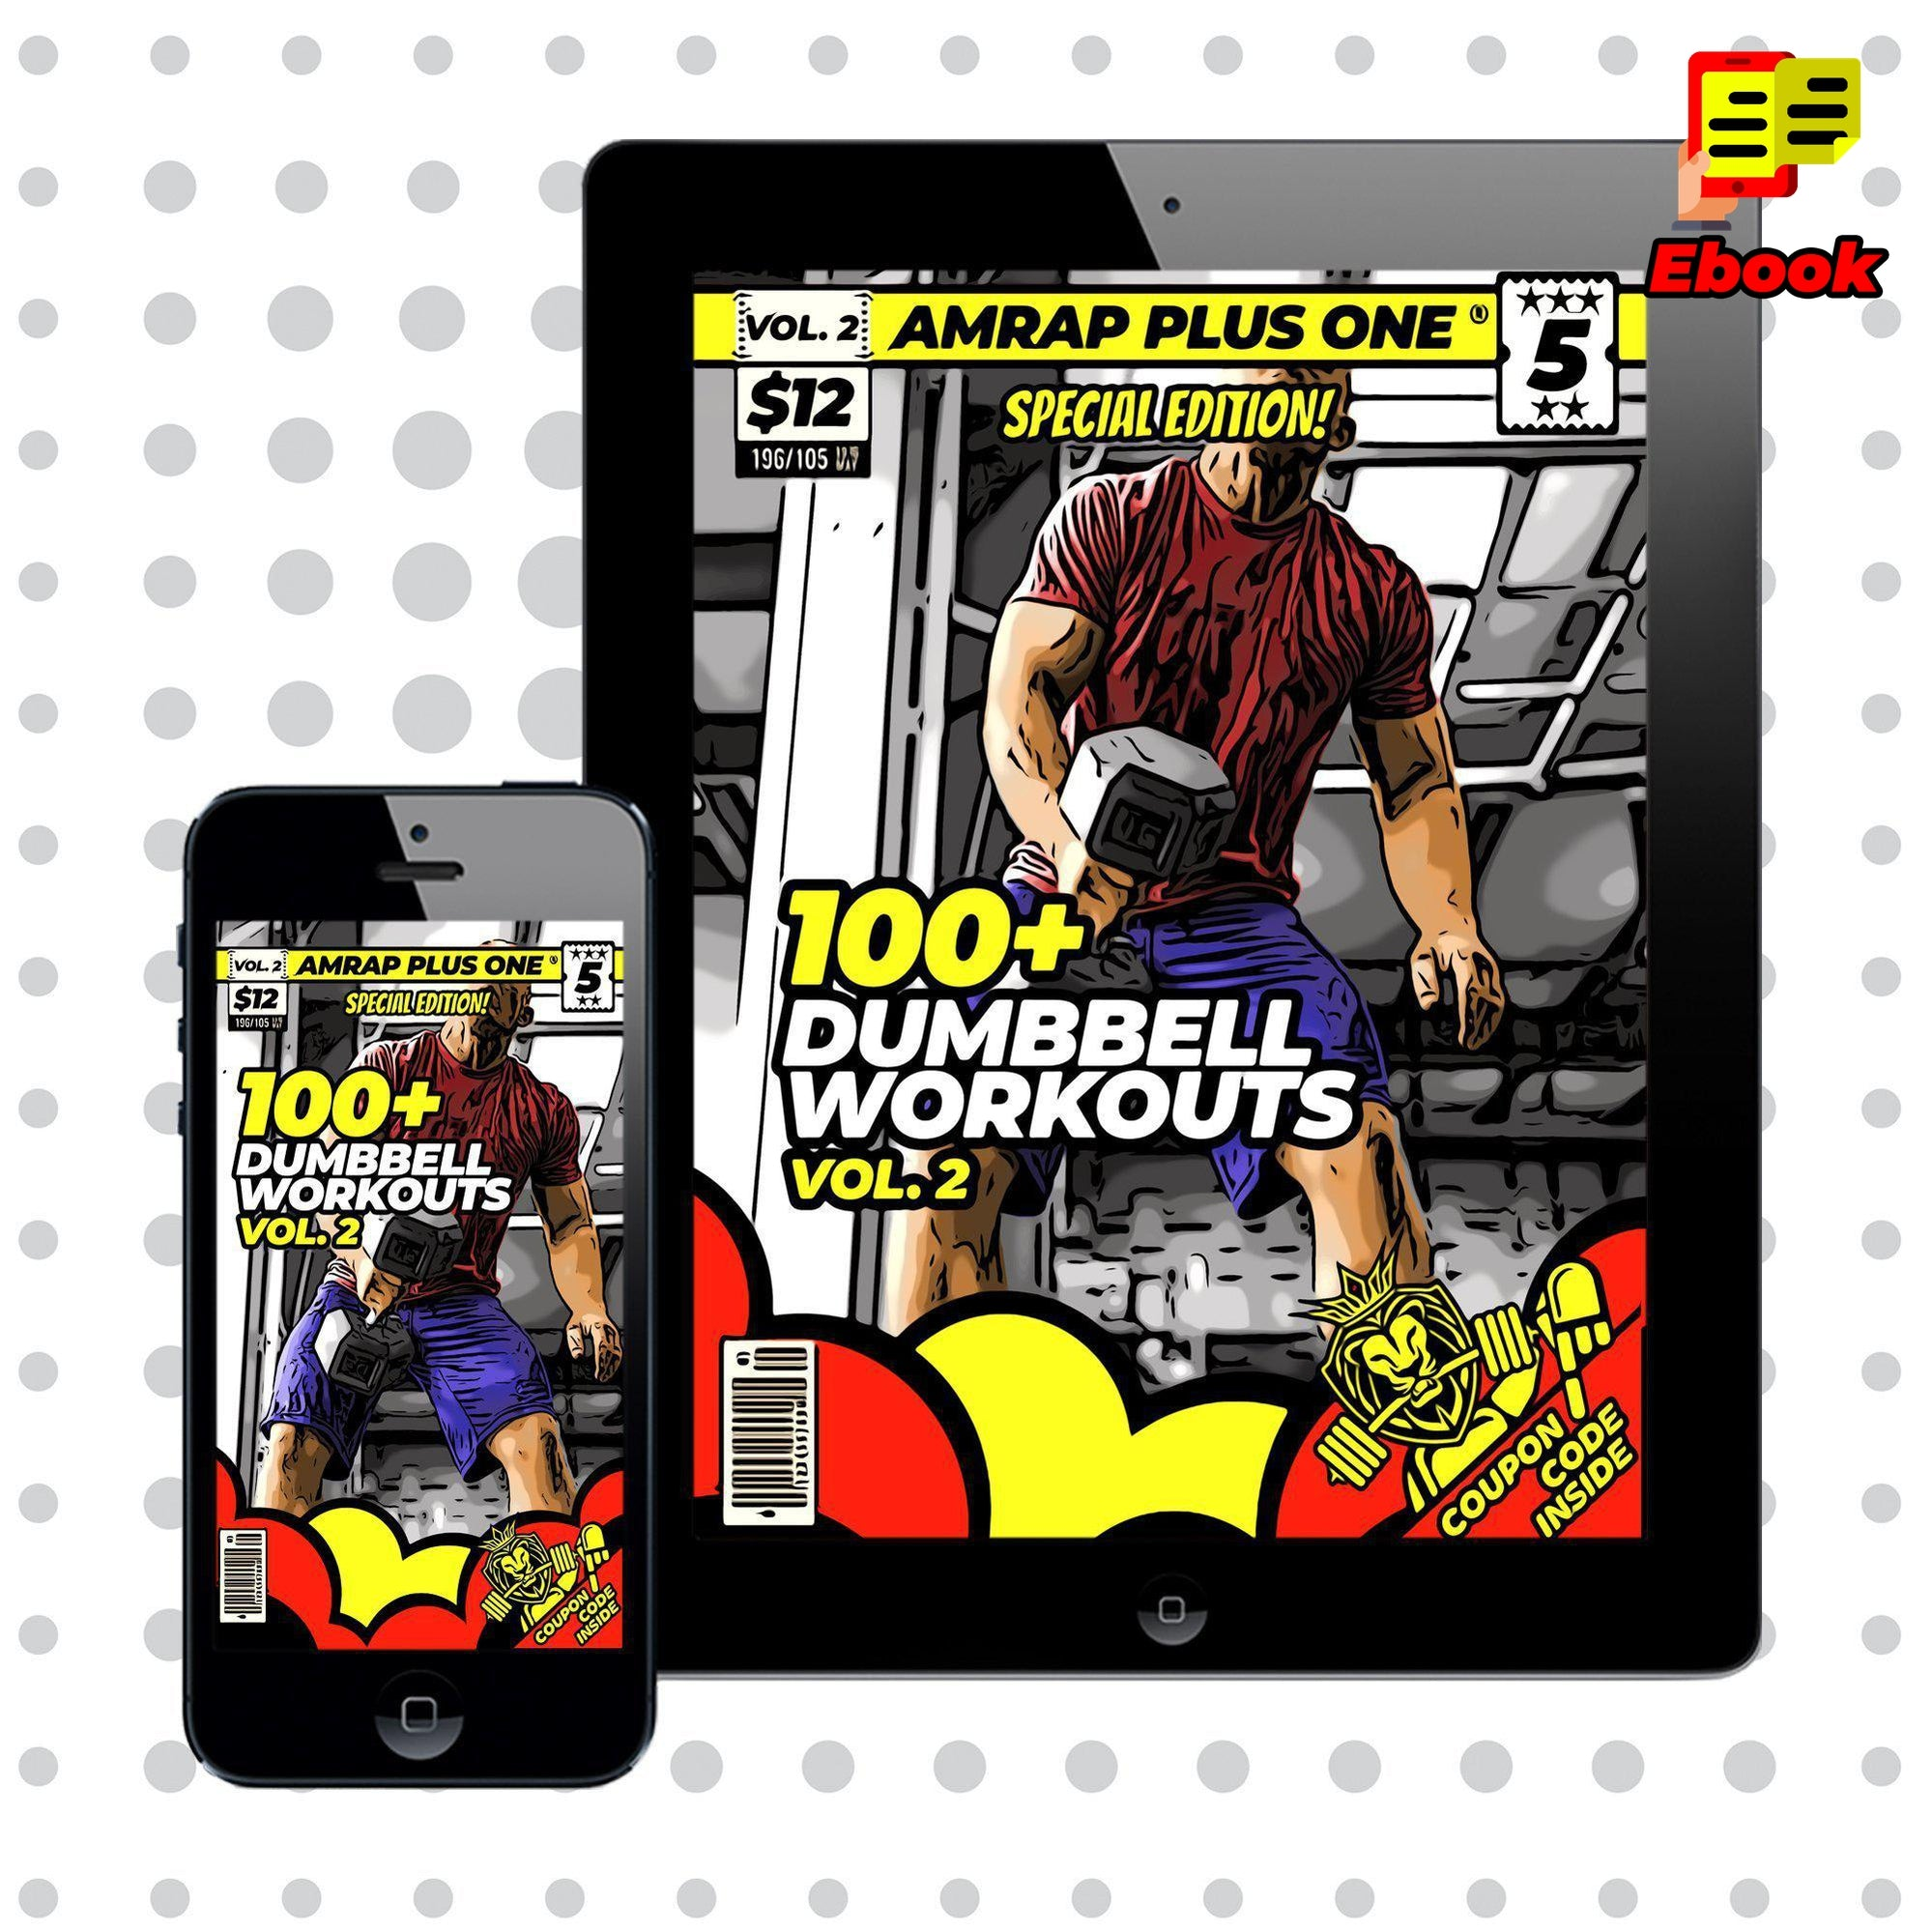 100+ Dumbbell Workouts Vol. 2 - AMRAP Plus One